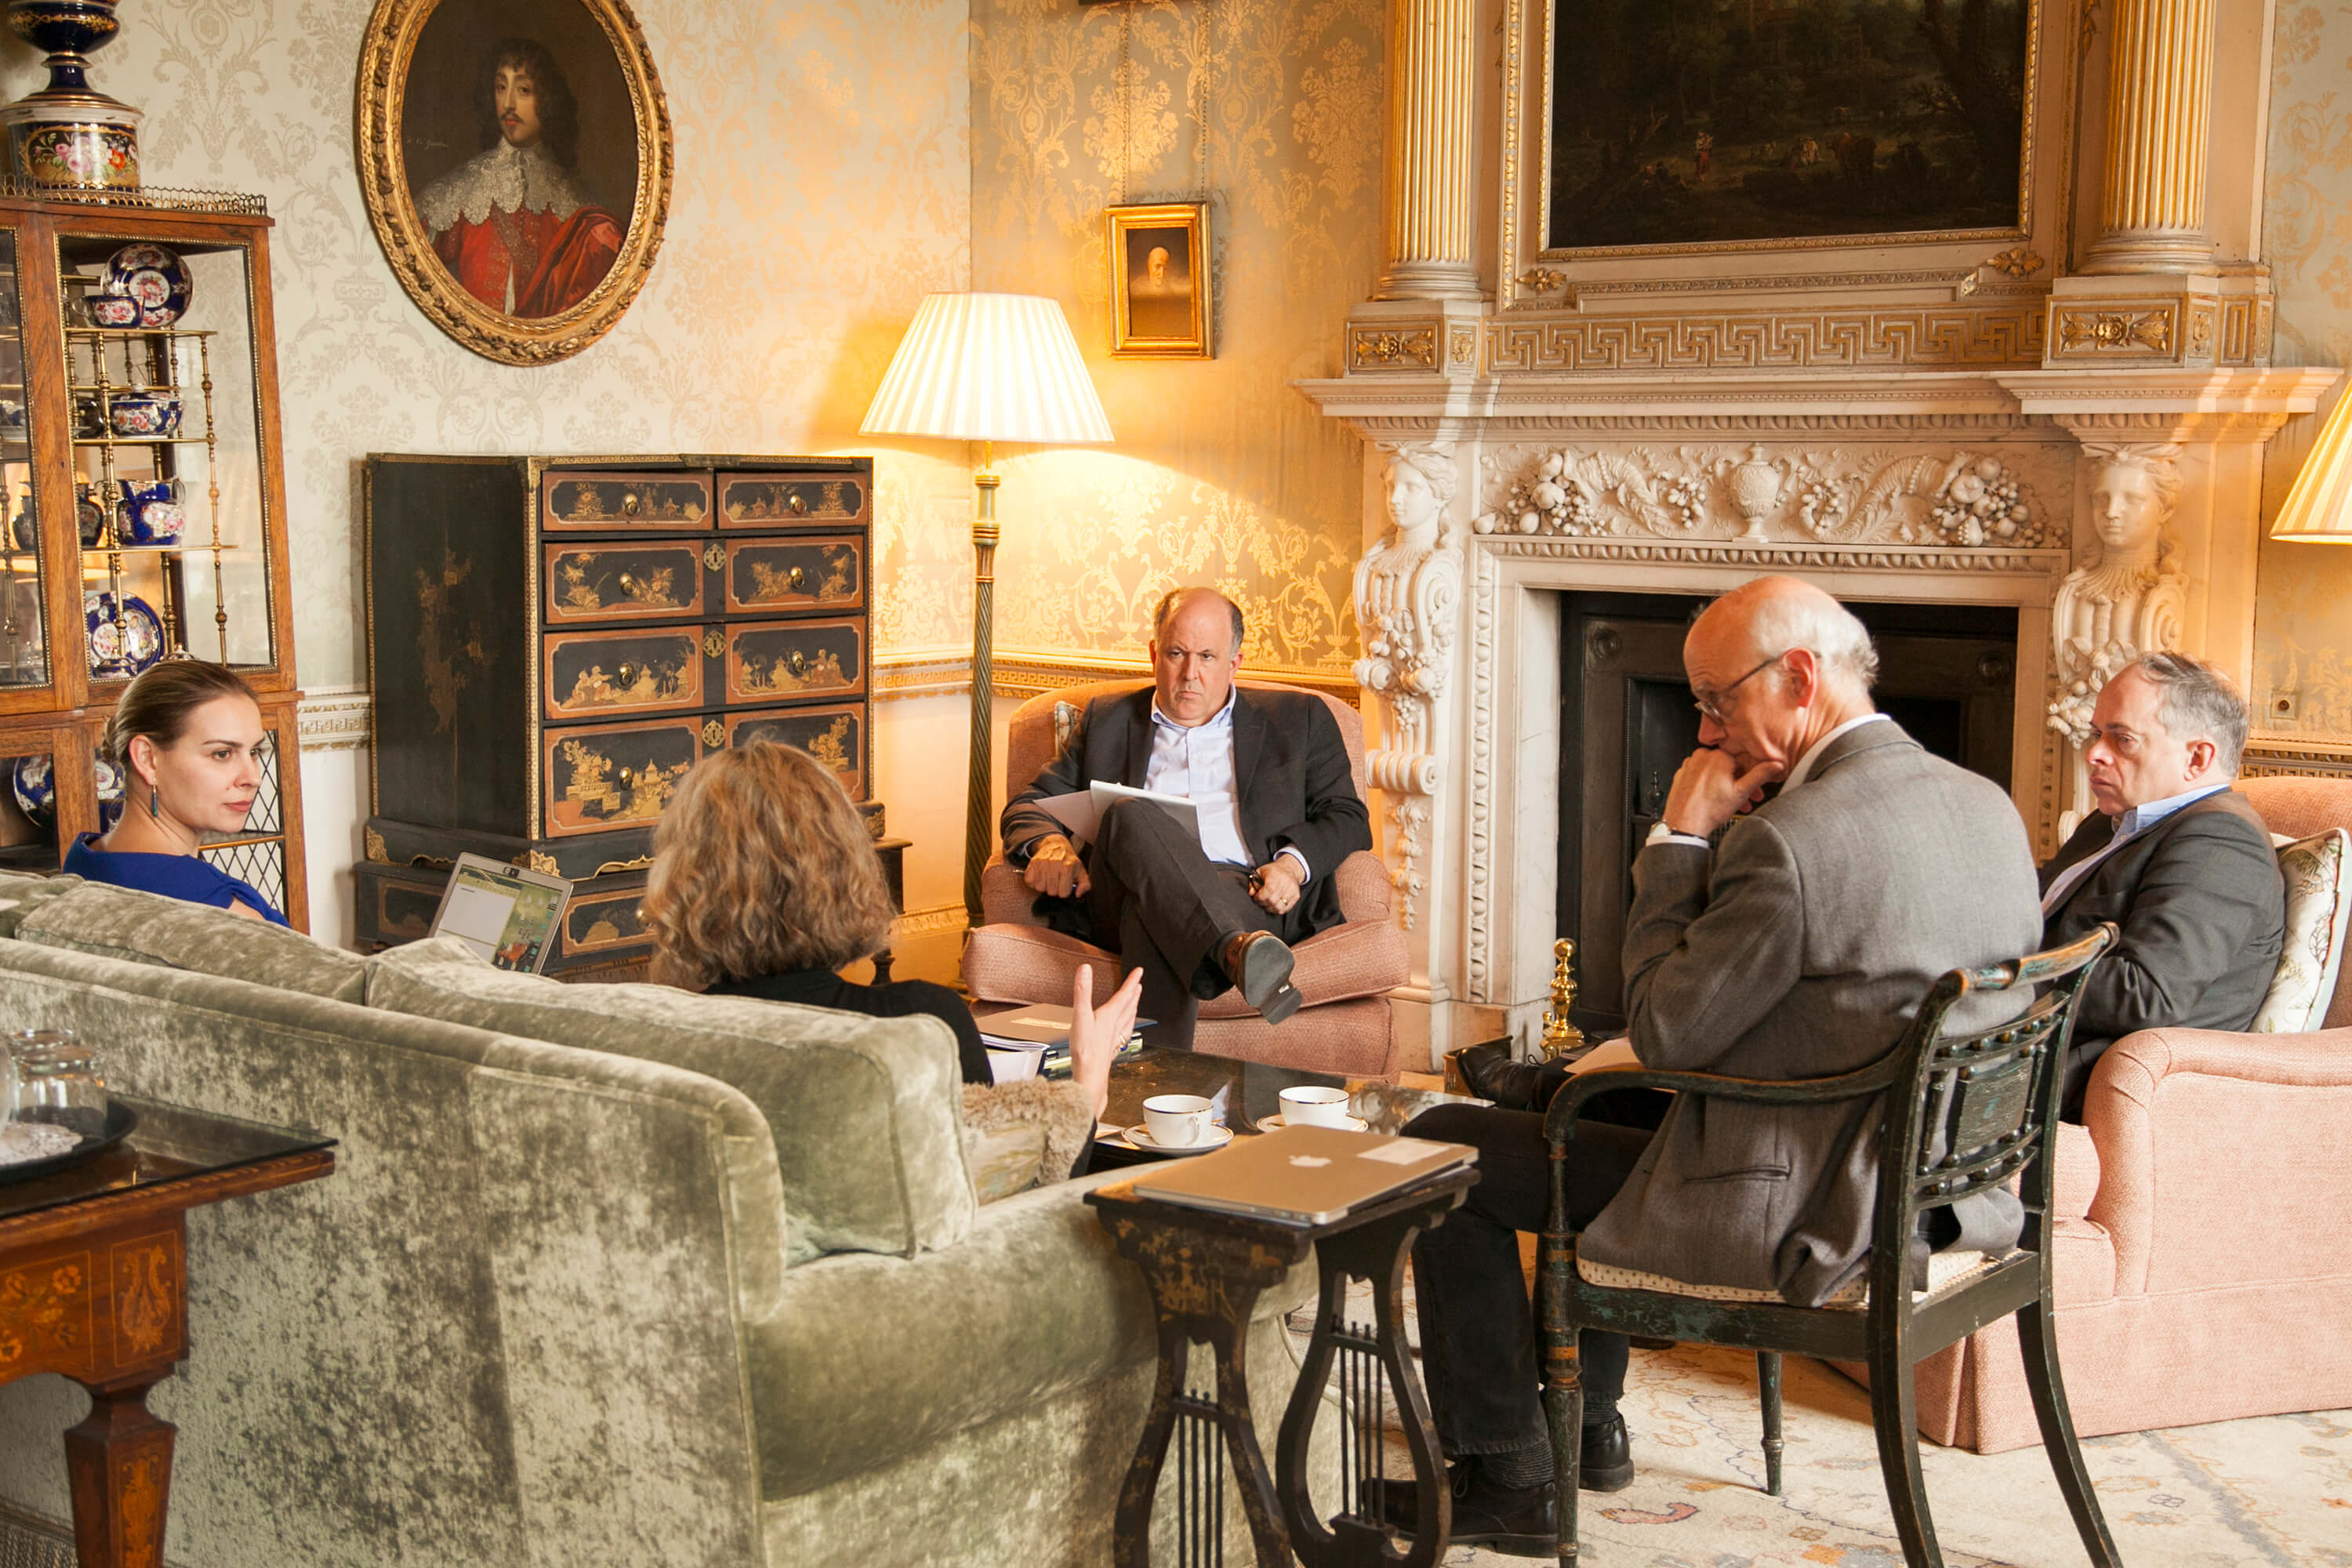 A break-out session in the Green Drawing Room. Credit: Silver Apples Photography. Transatlantic Working Group.